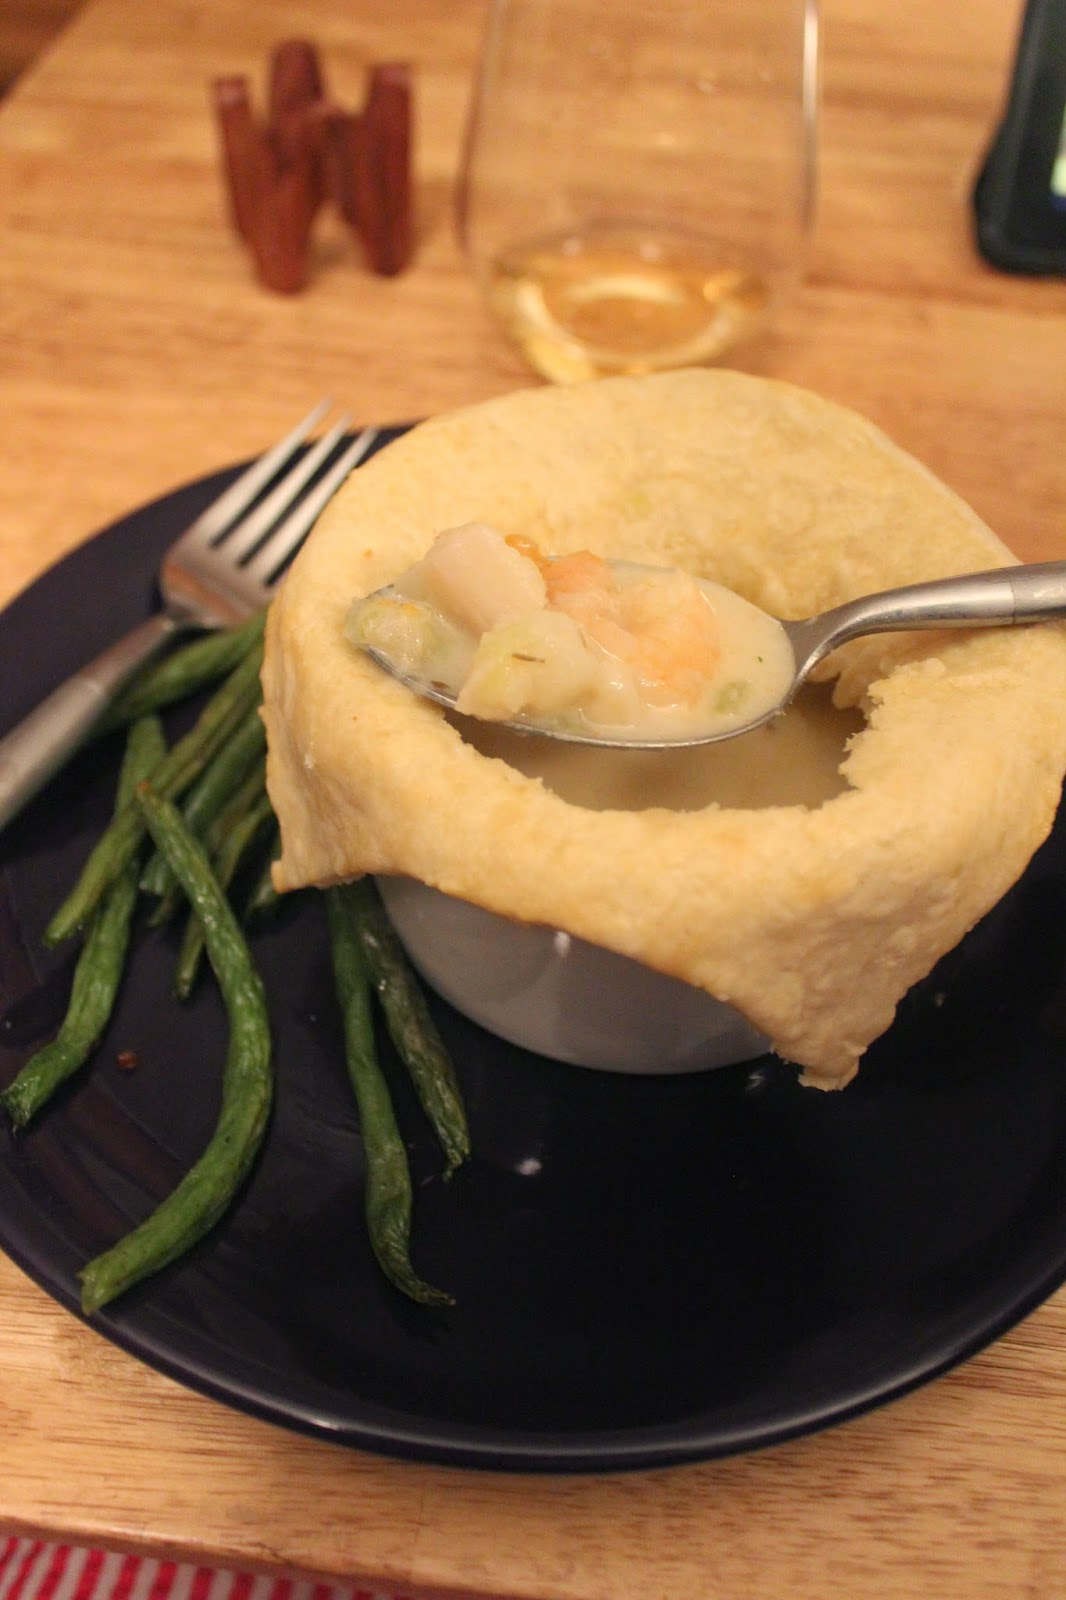 Easily Adaptable Shrimp and Scallop Pot Pie or Chowder | Runway Apricot